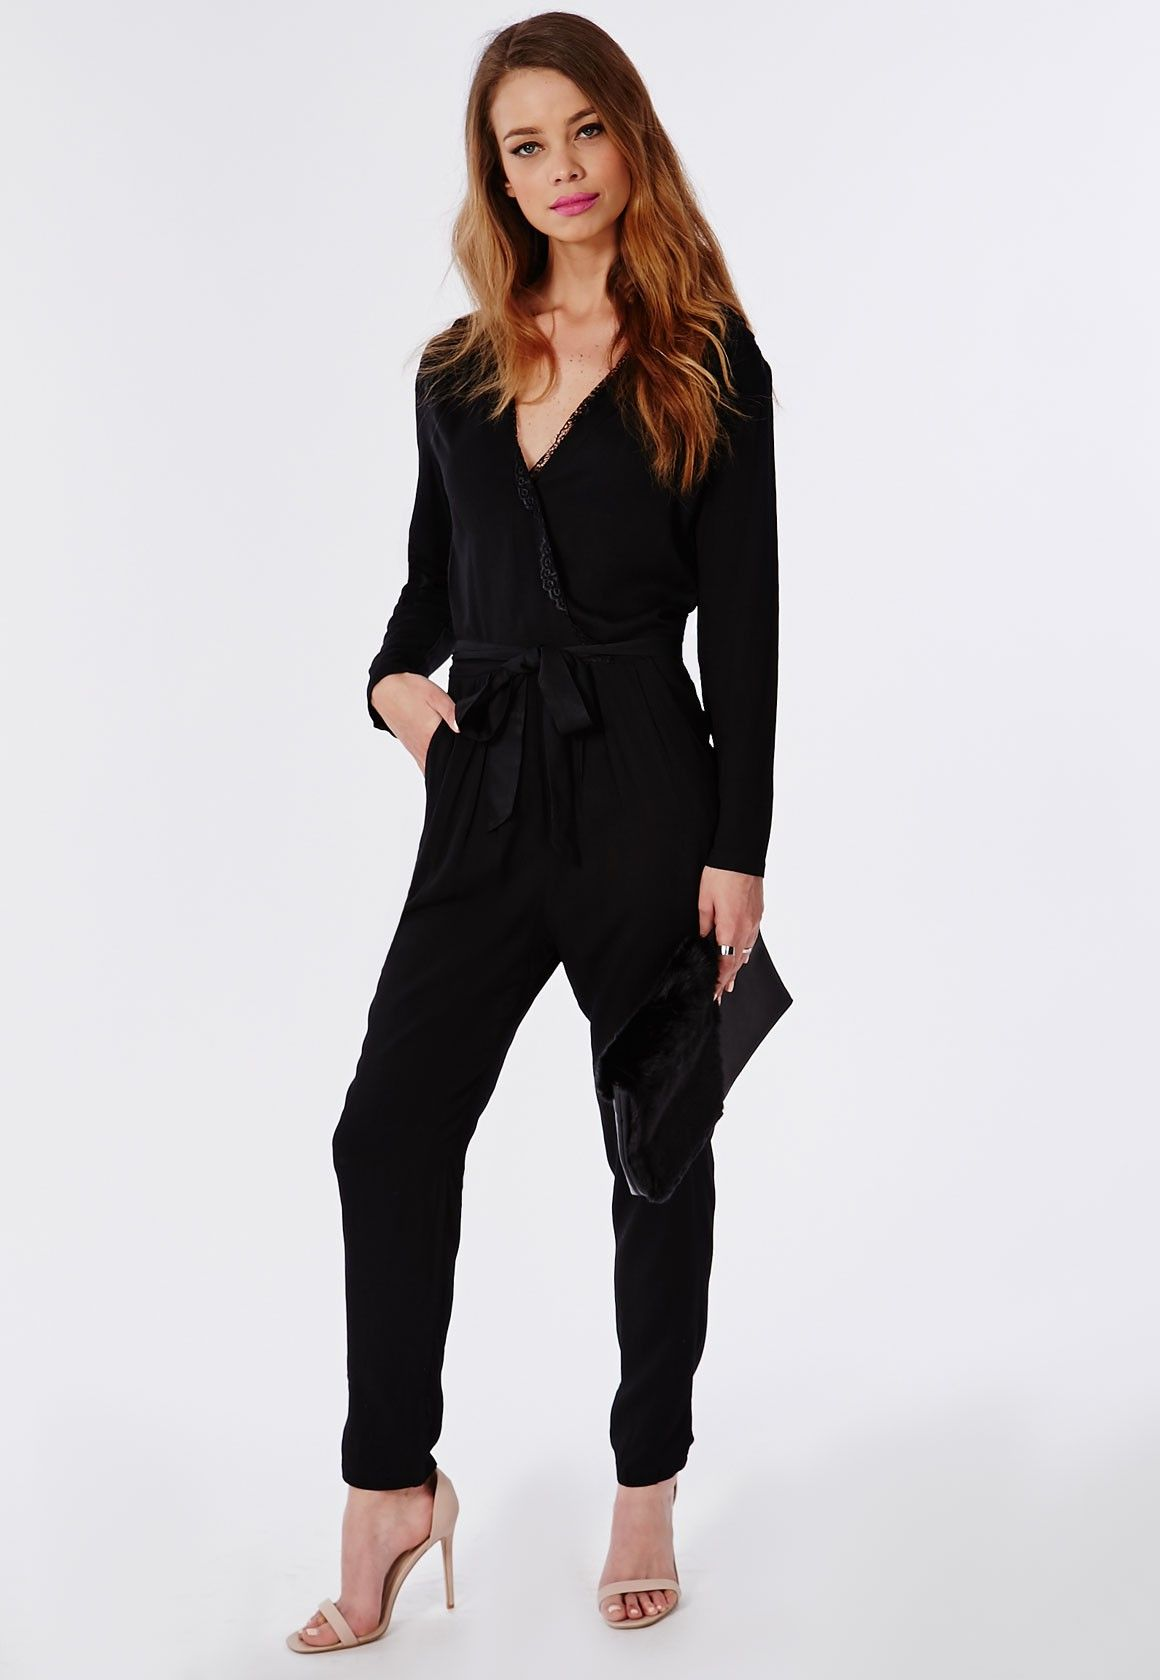 Get going to wherever you need to go in one of our fabulous women's jumpsuits for a look that makes an exciting fashion statement. Whether you choose bold stripes, feminine floral prints or playful polka dots, you will be sure to get smiles wherever you go.